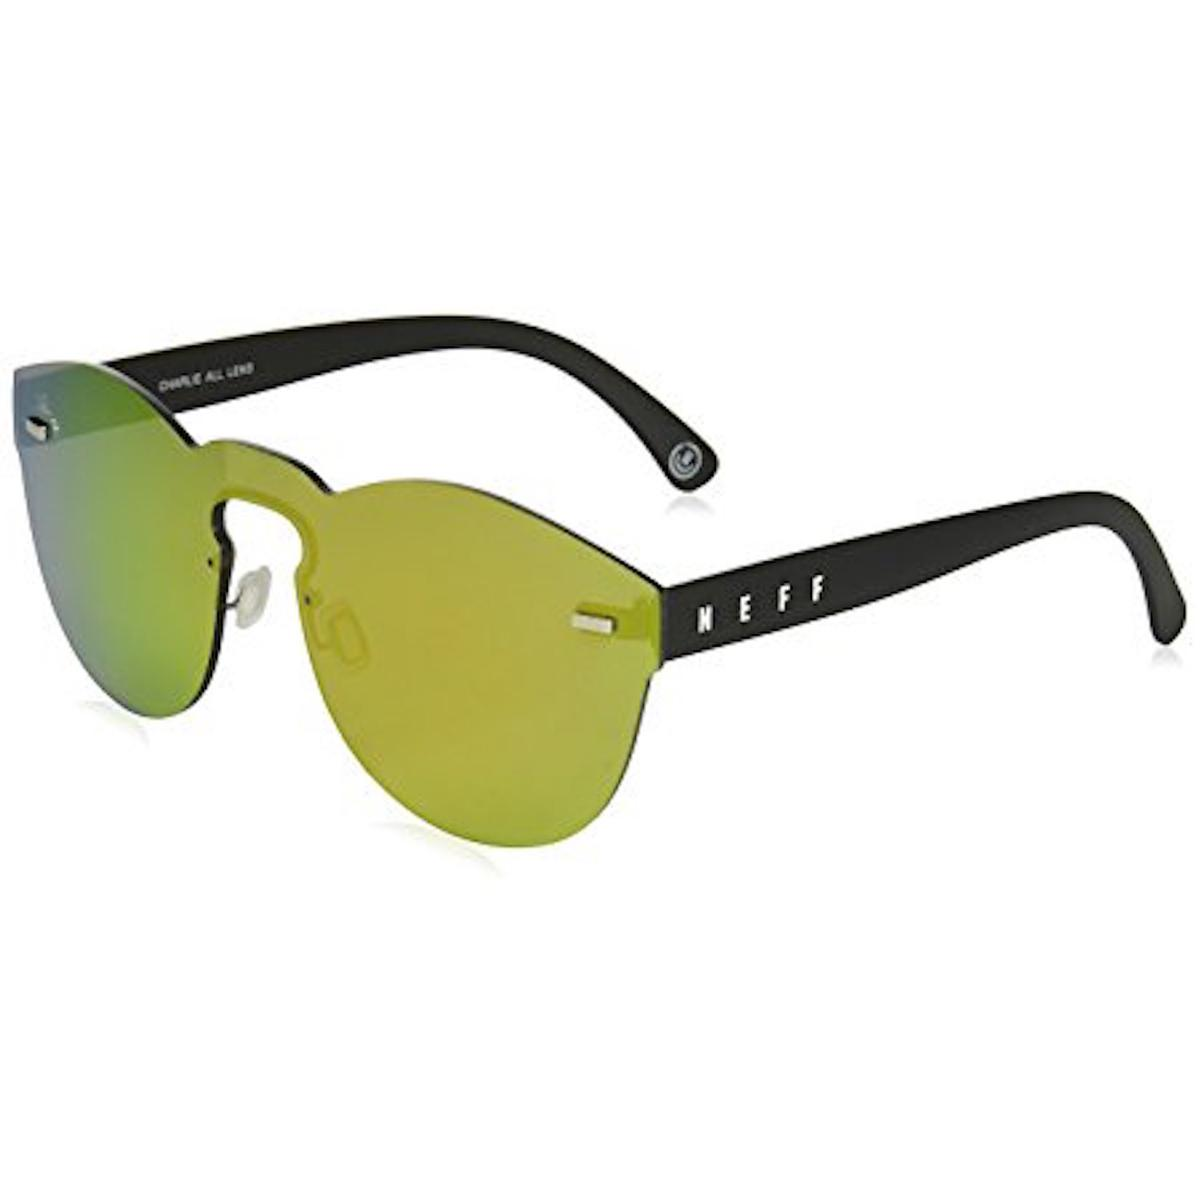 Neff Charlie All Lens Sunglasses